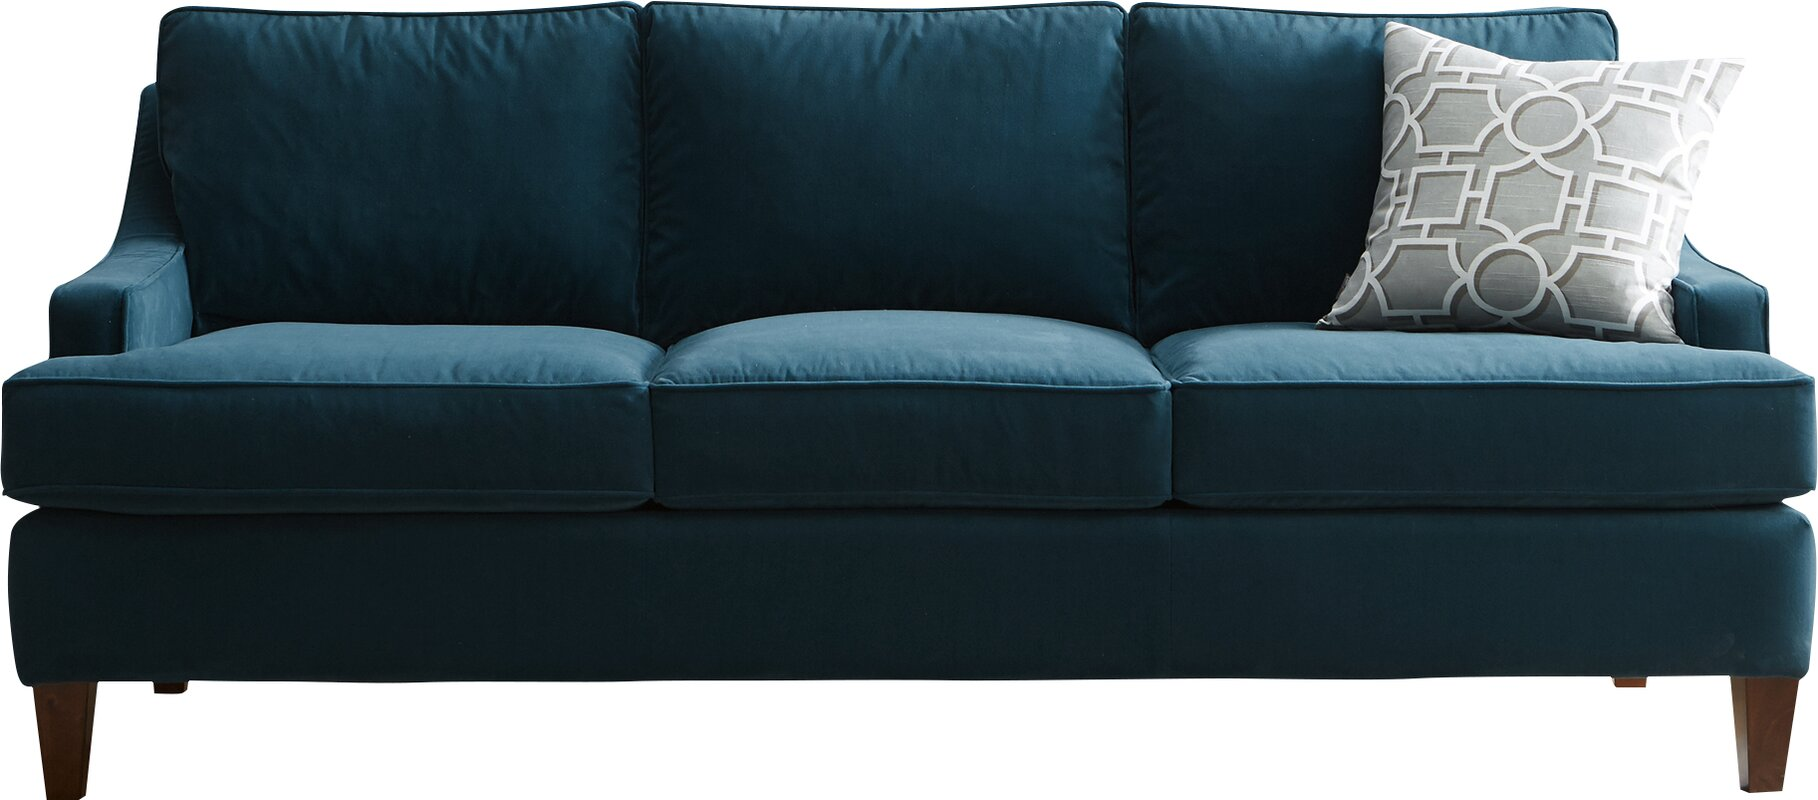 george contemporary sofa bed